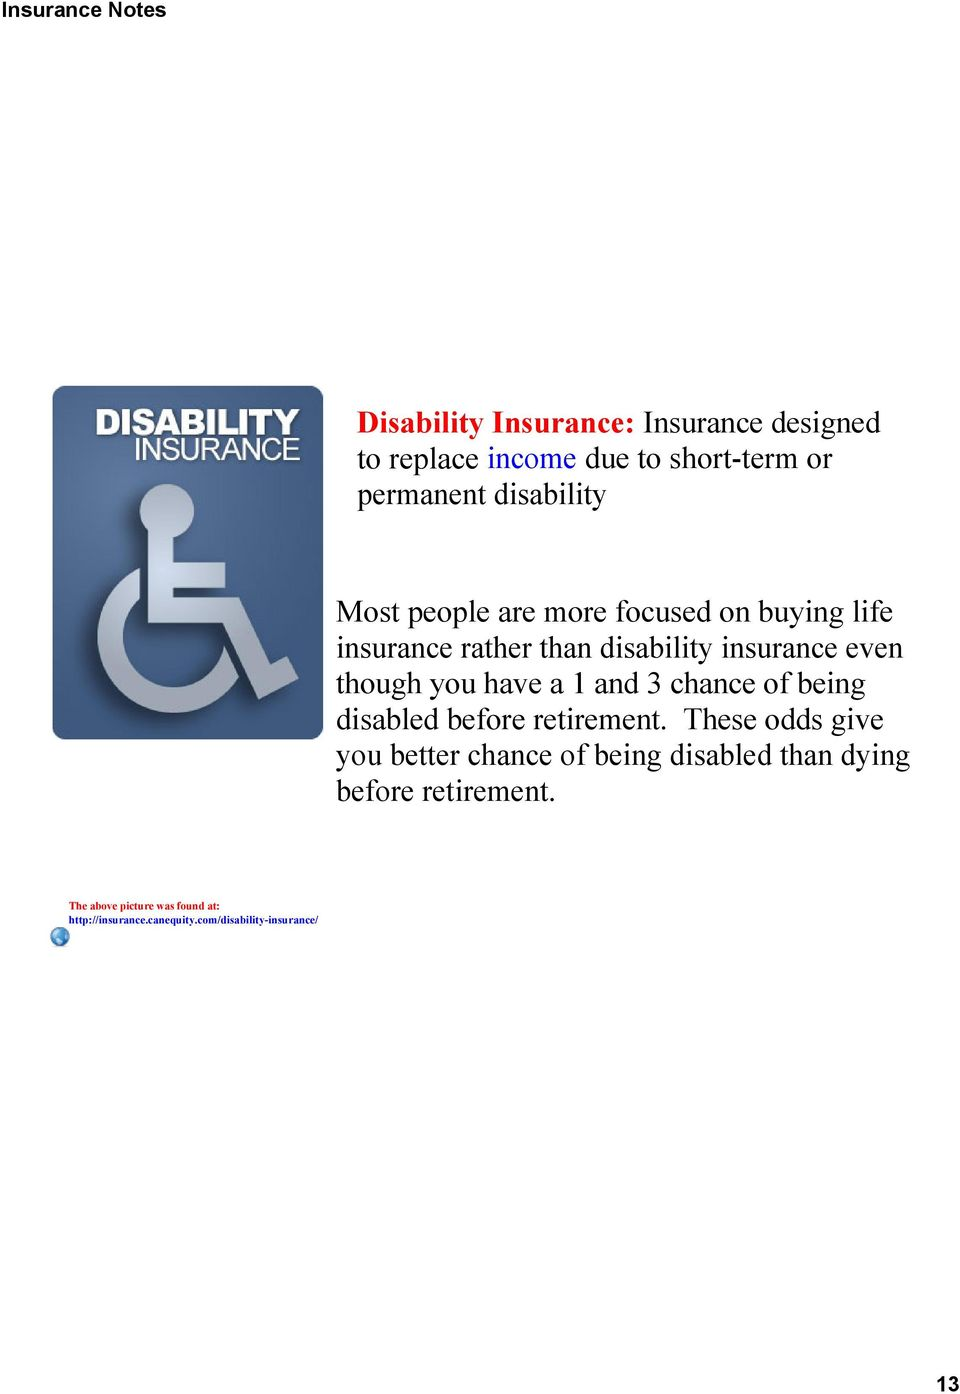 even though you have a 1 and 3 chance of being disabled before retirement.